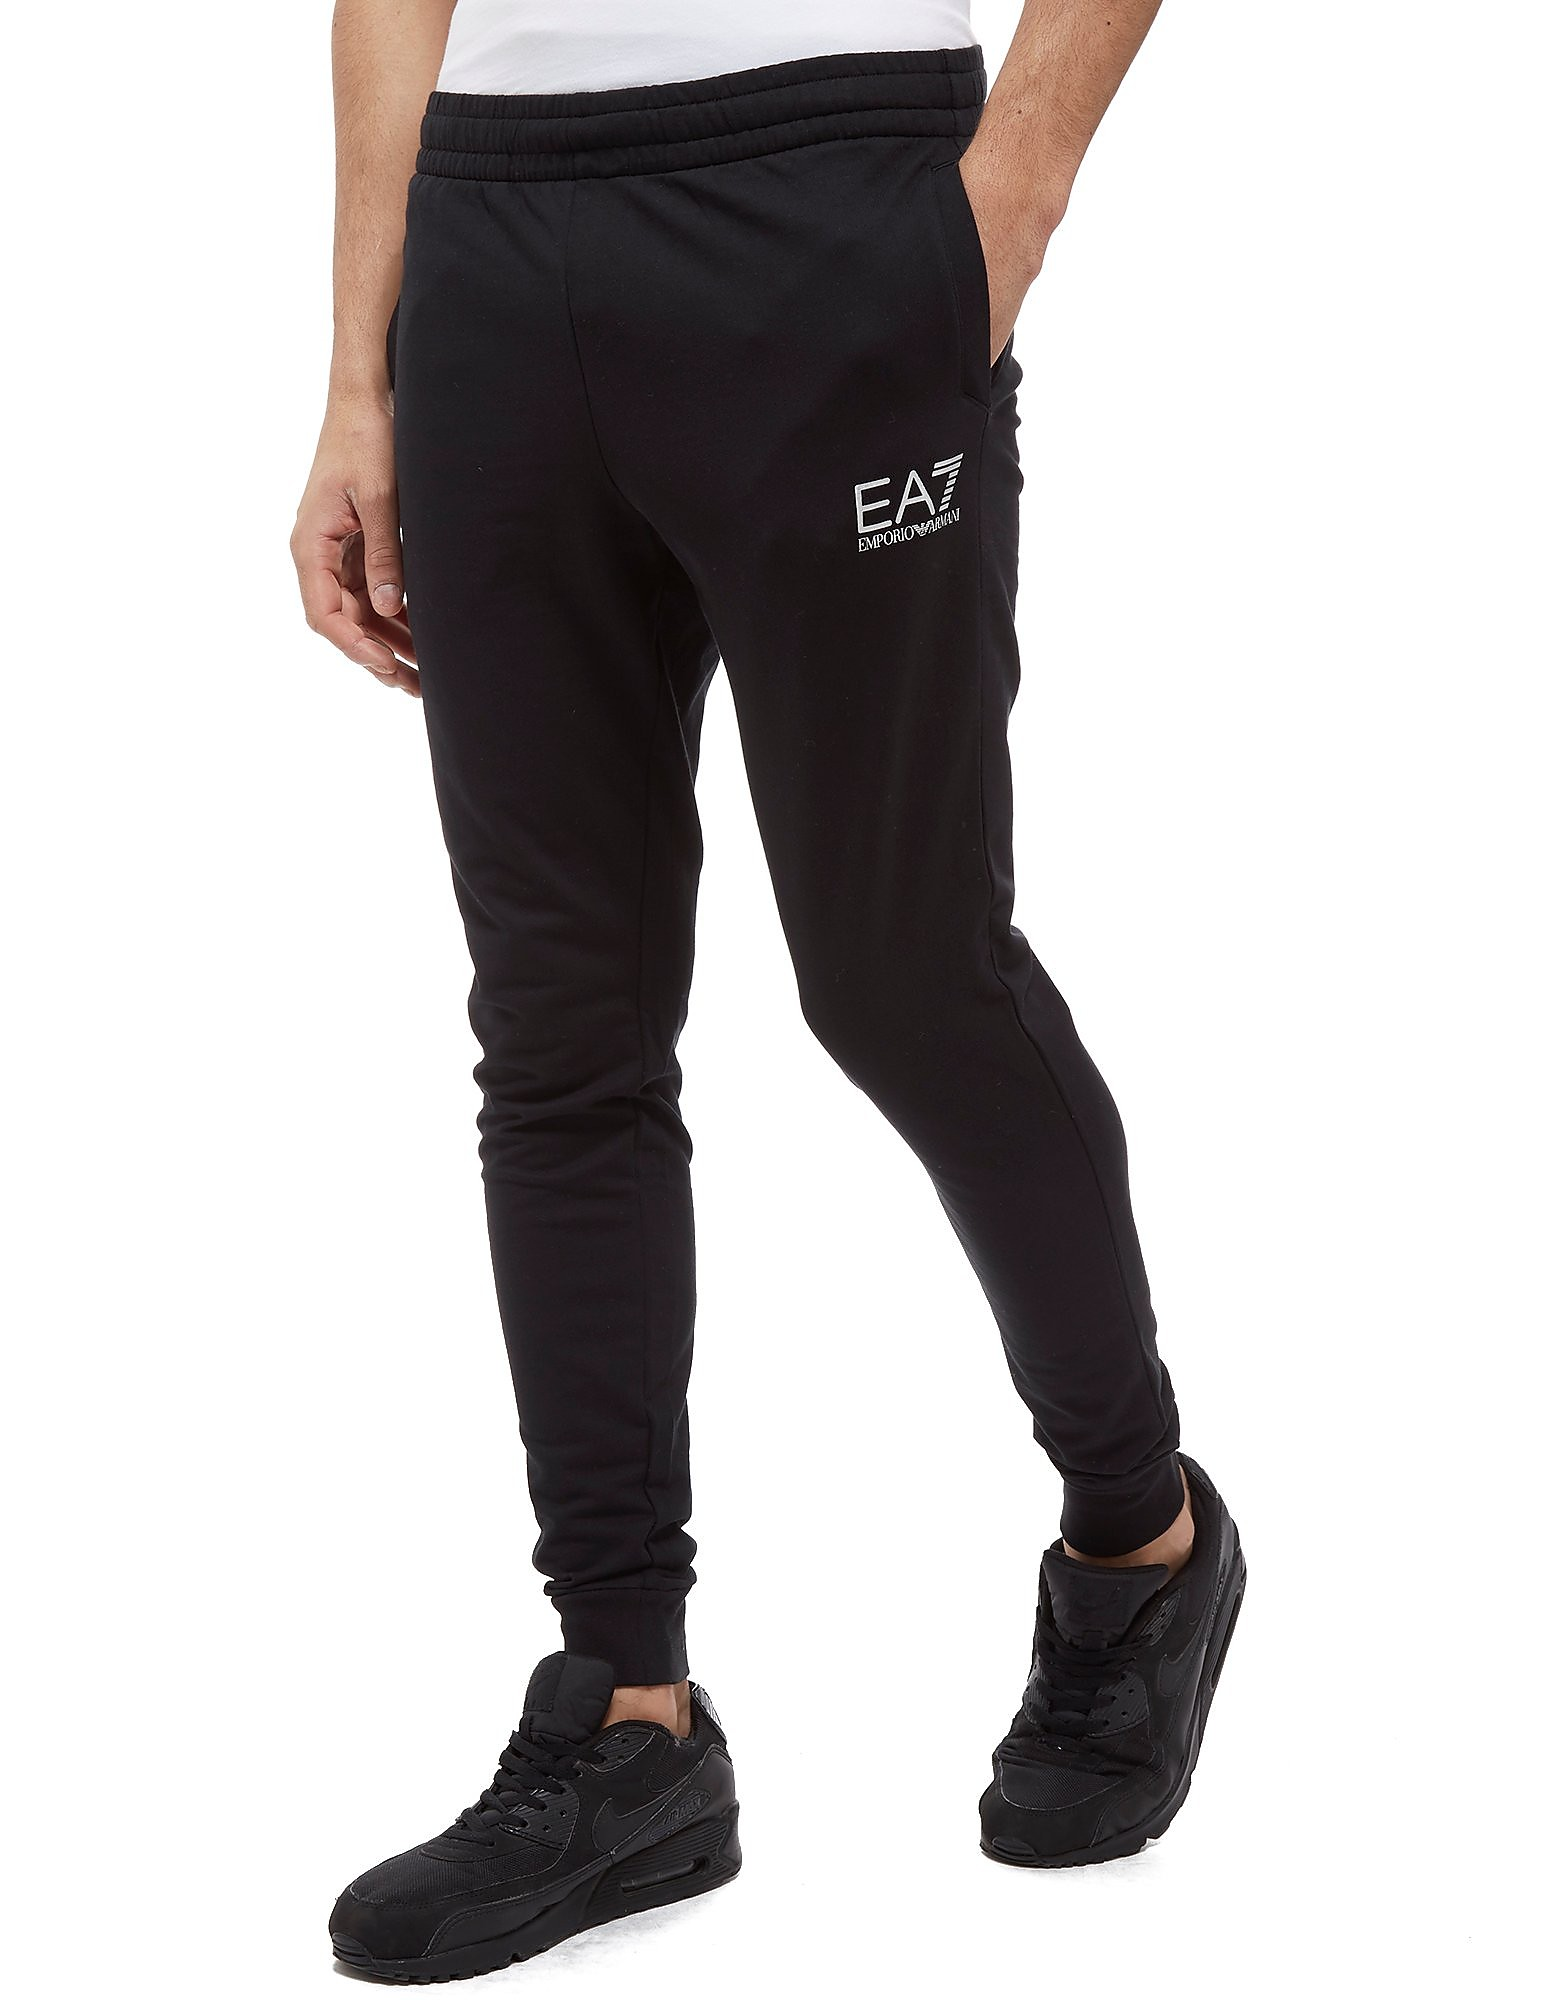 Emporio Armani EA7 Core Fleece Pants